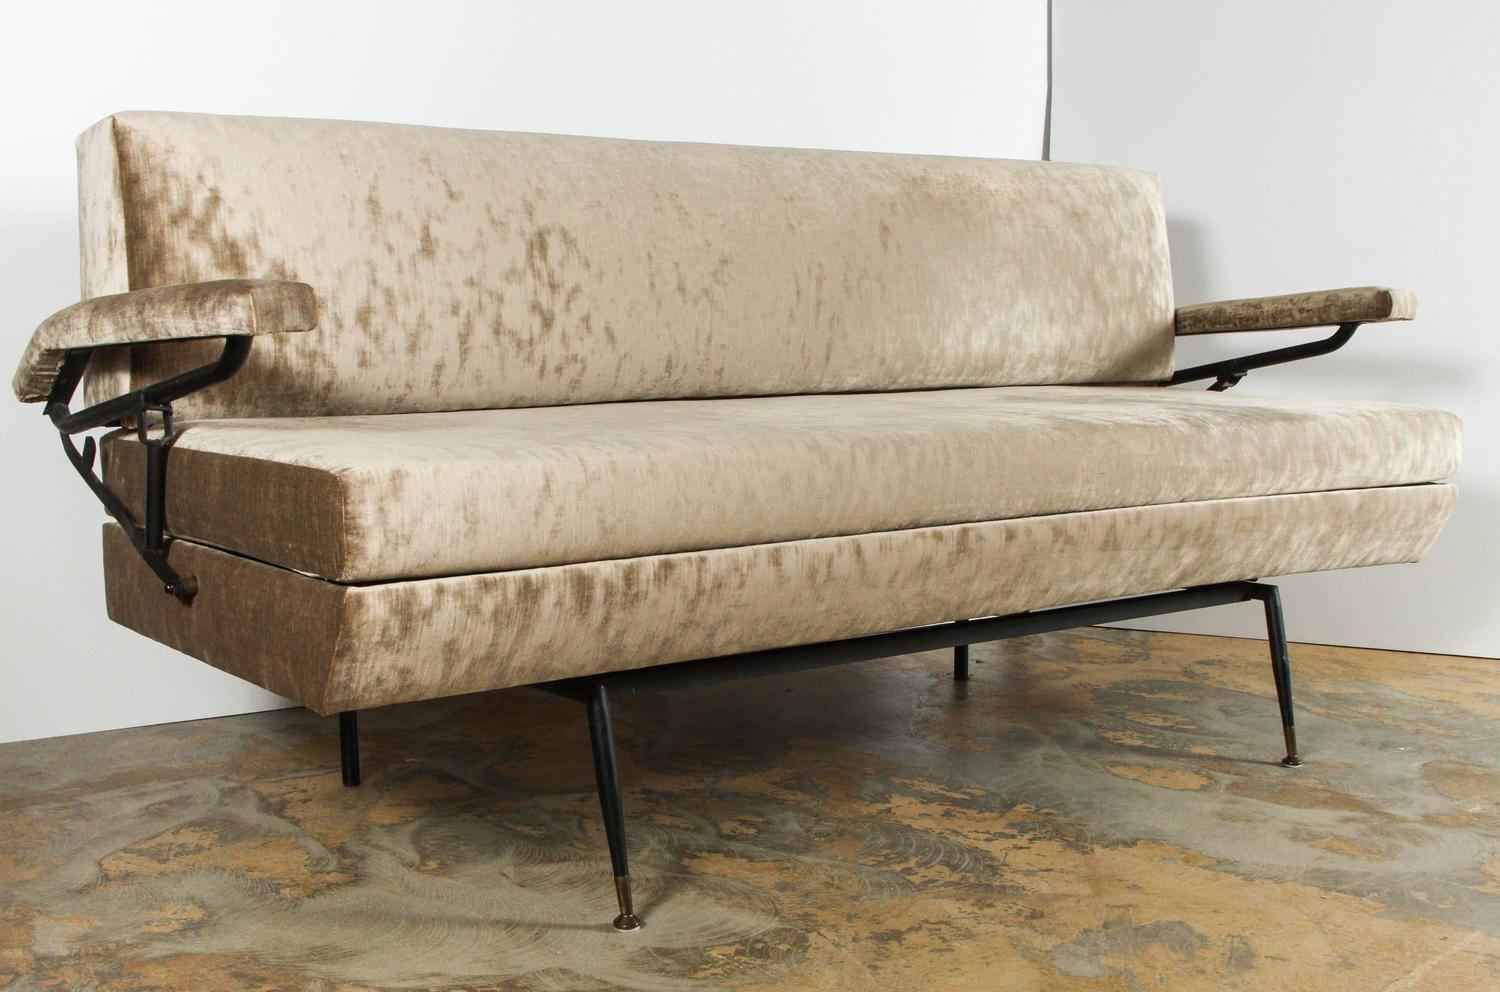 deep sofa daybed beds for small rooms uk italian and in style of osvaldo borsani